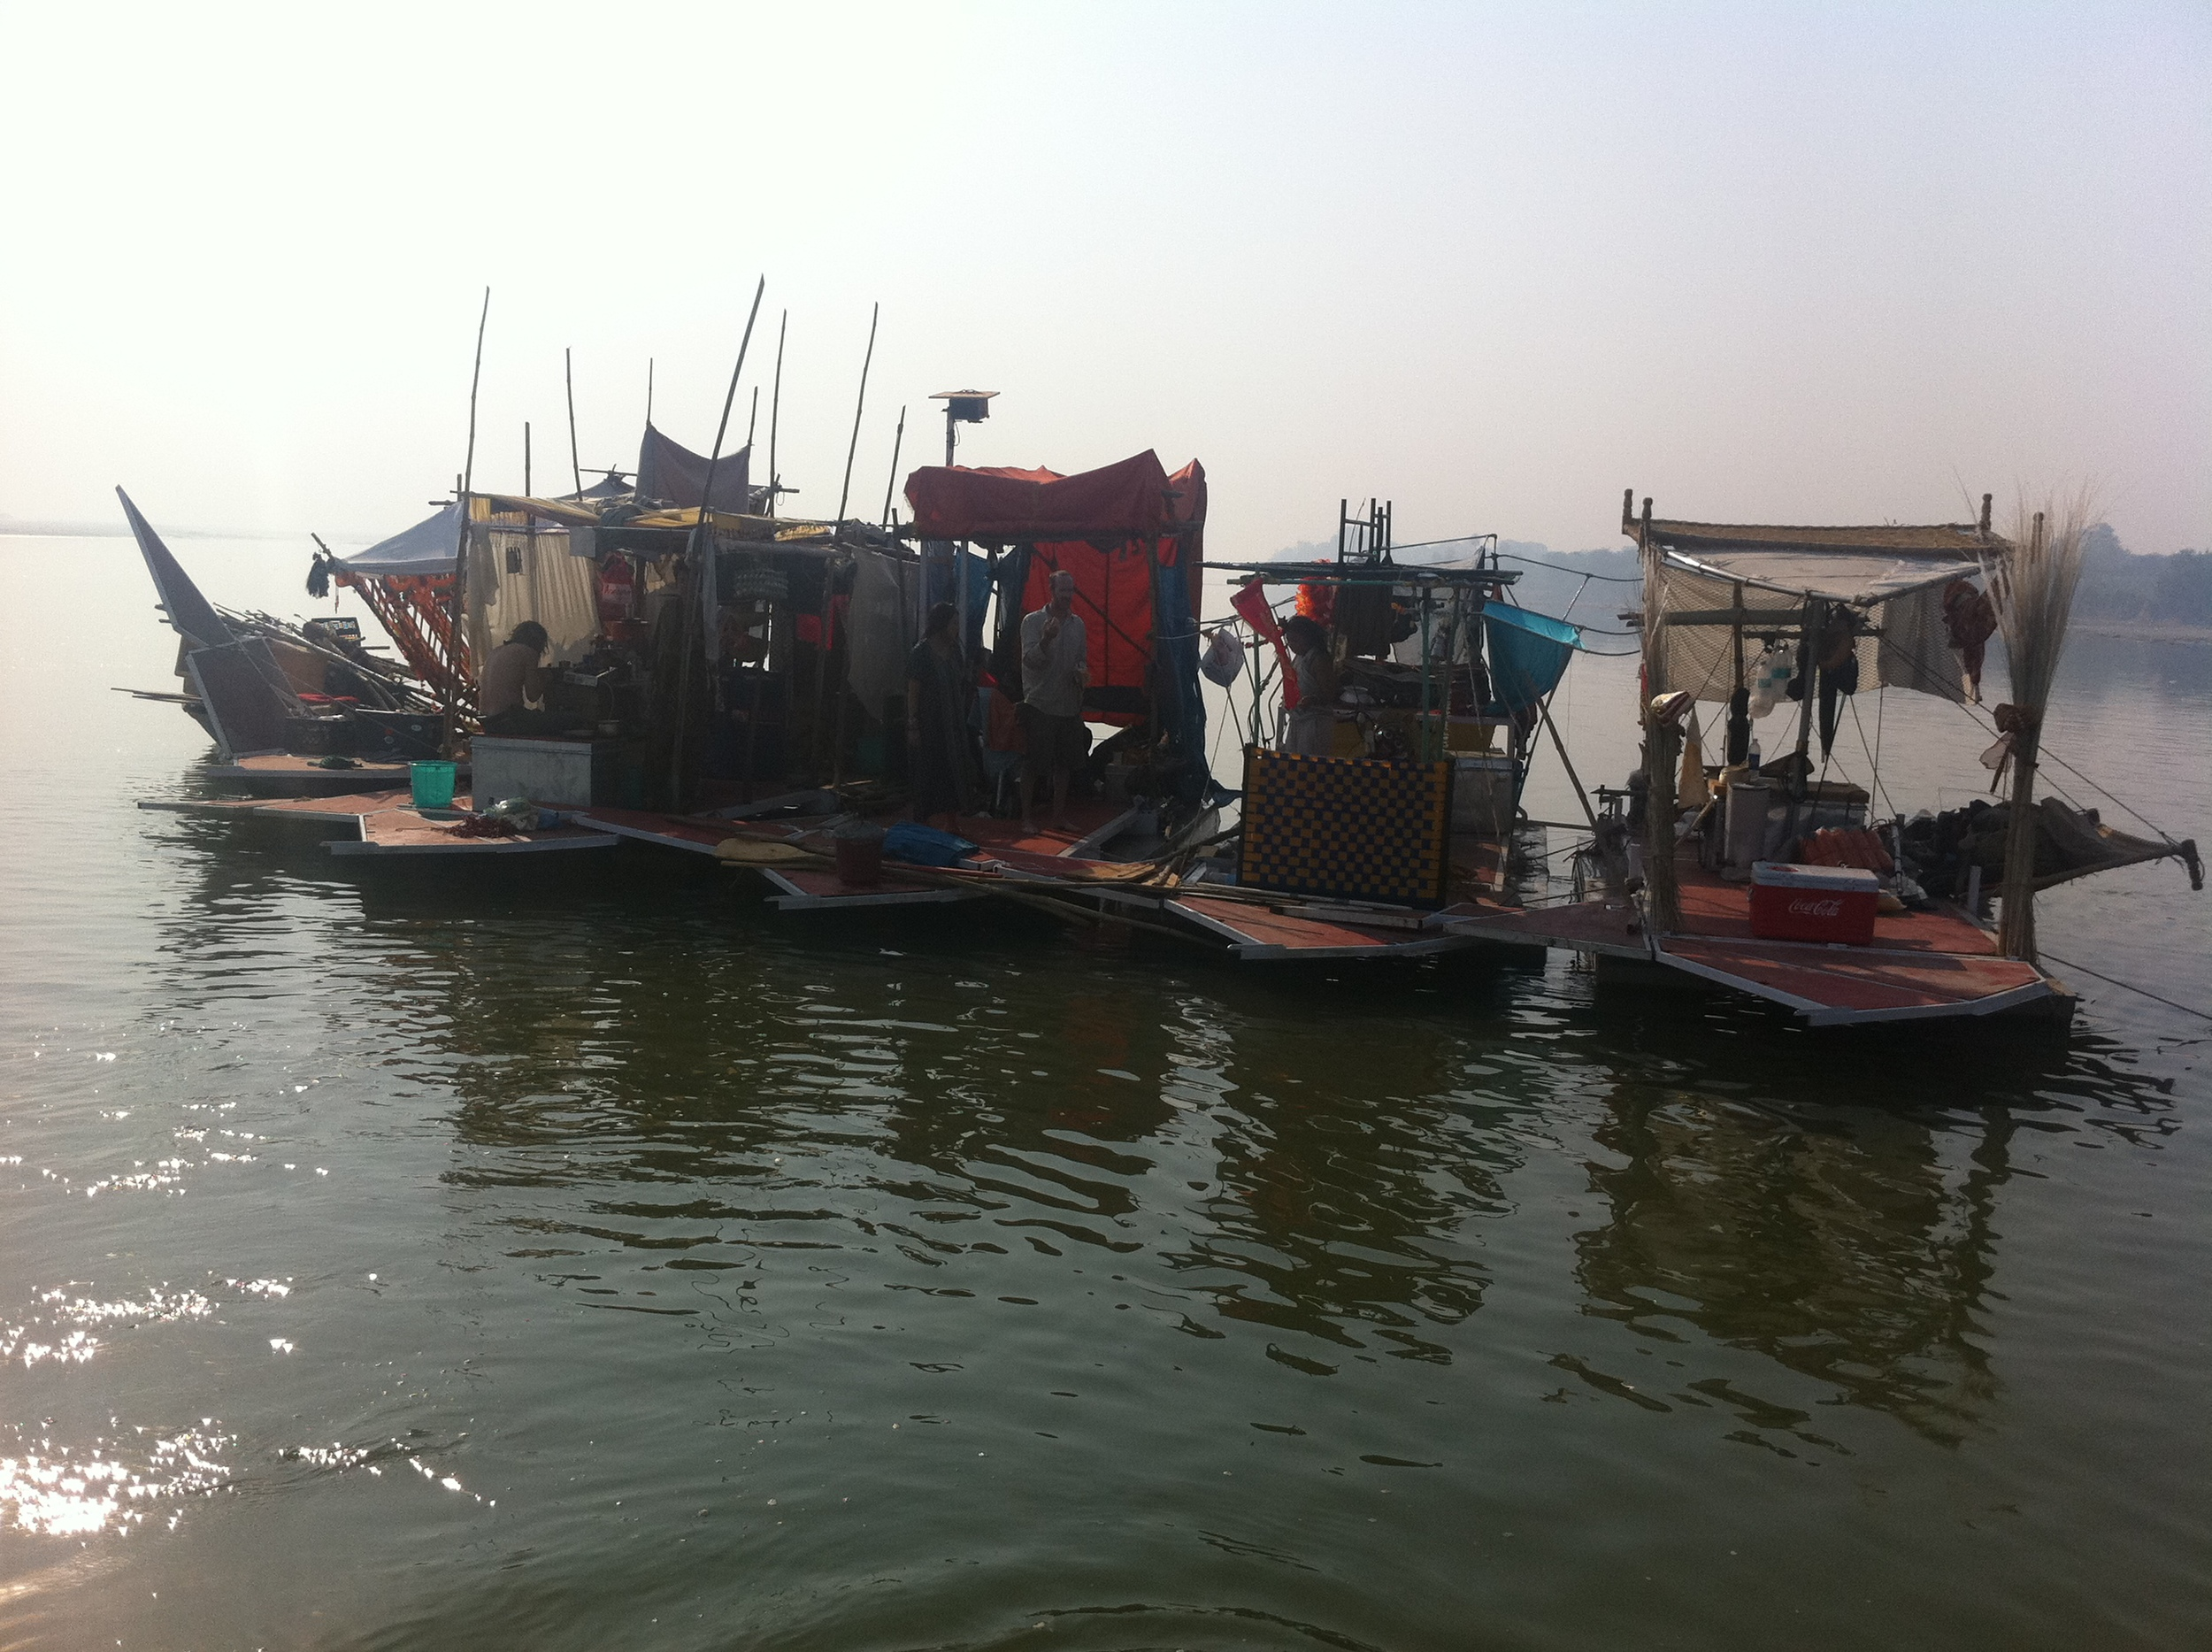 Copy of The Swimming Cities boats on the Ganges.